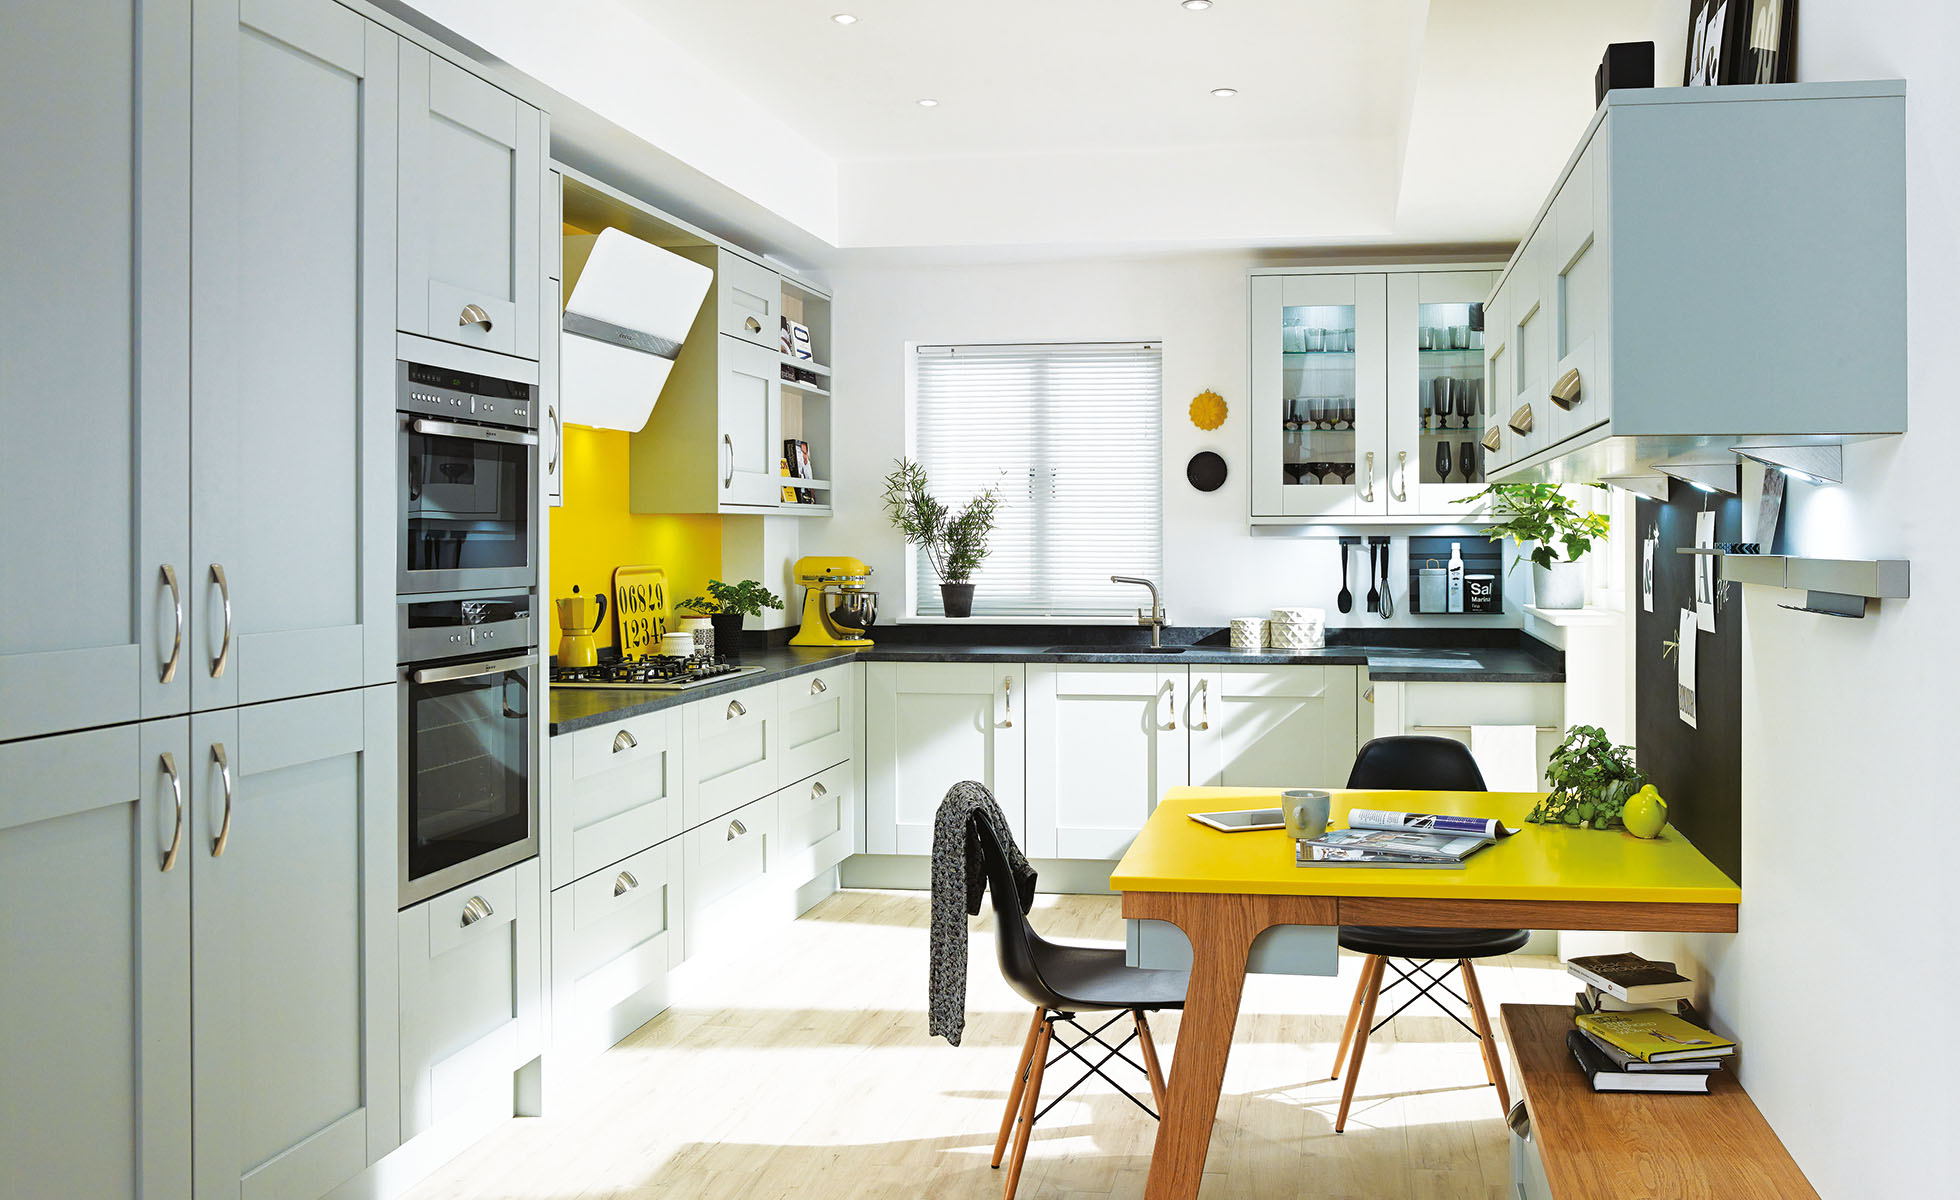 How to save money on your kitchen | Real Homes